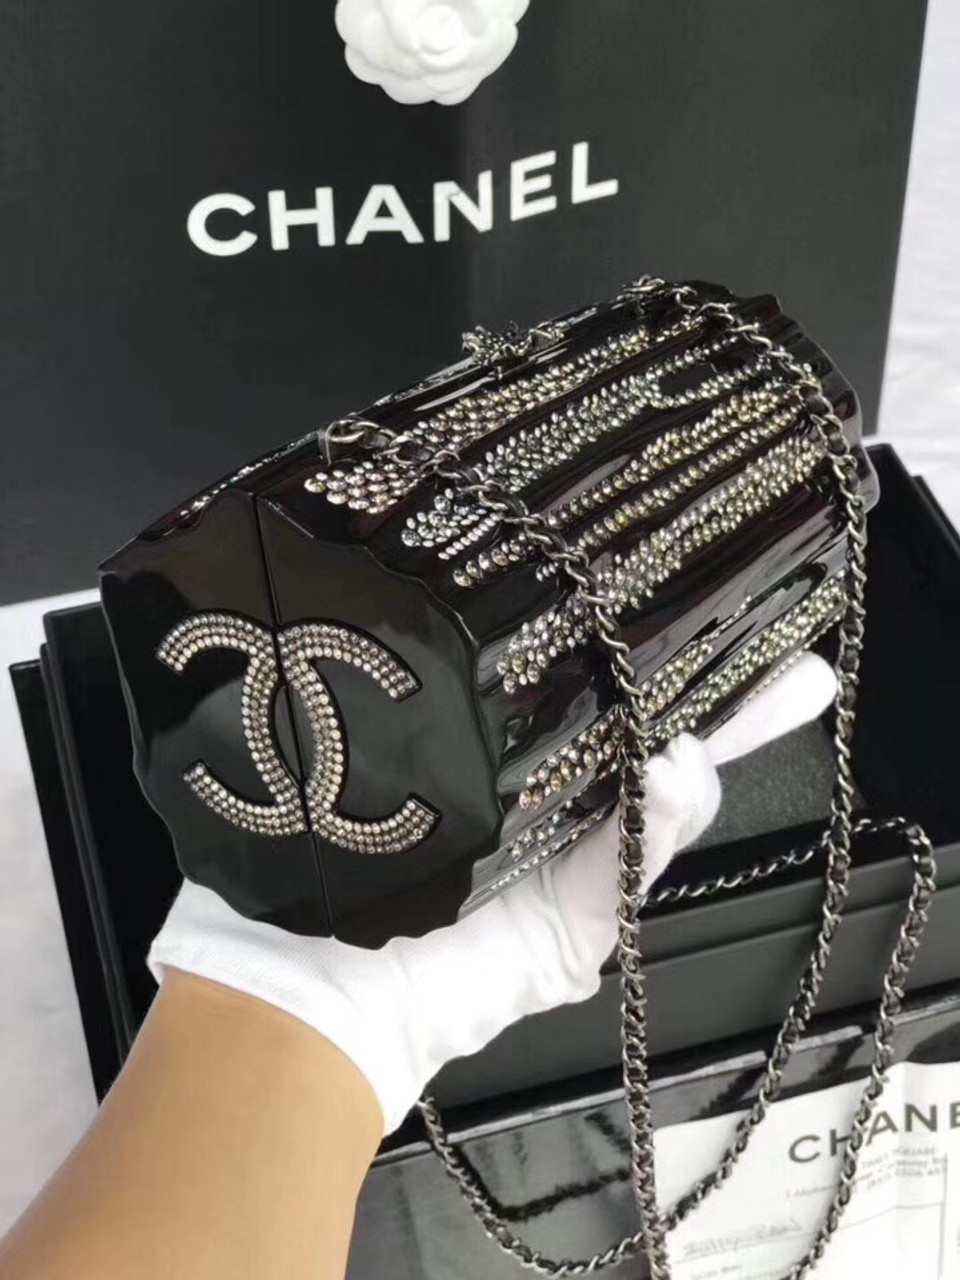 933f50f16db007 Chanel Diamond Evening Bag 2019 - Bella Vita Moda